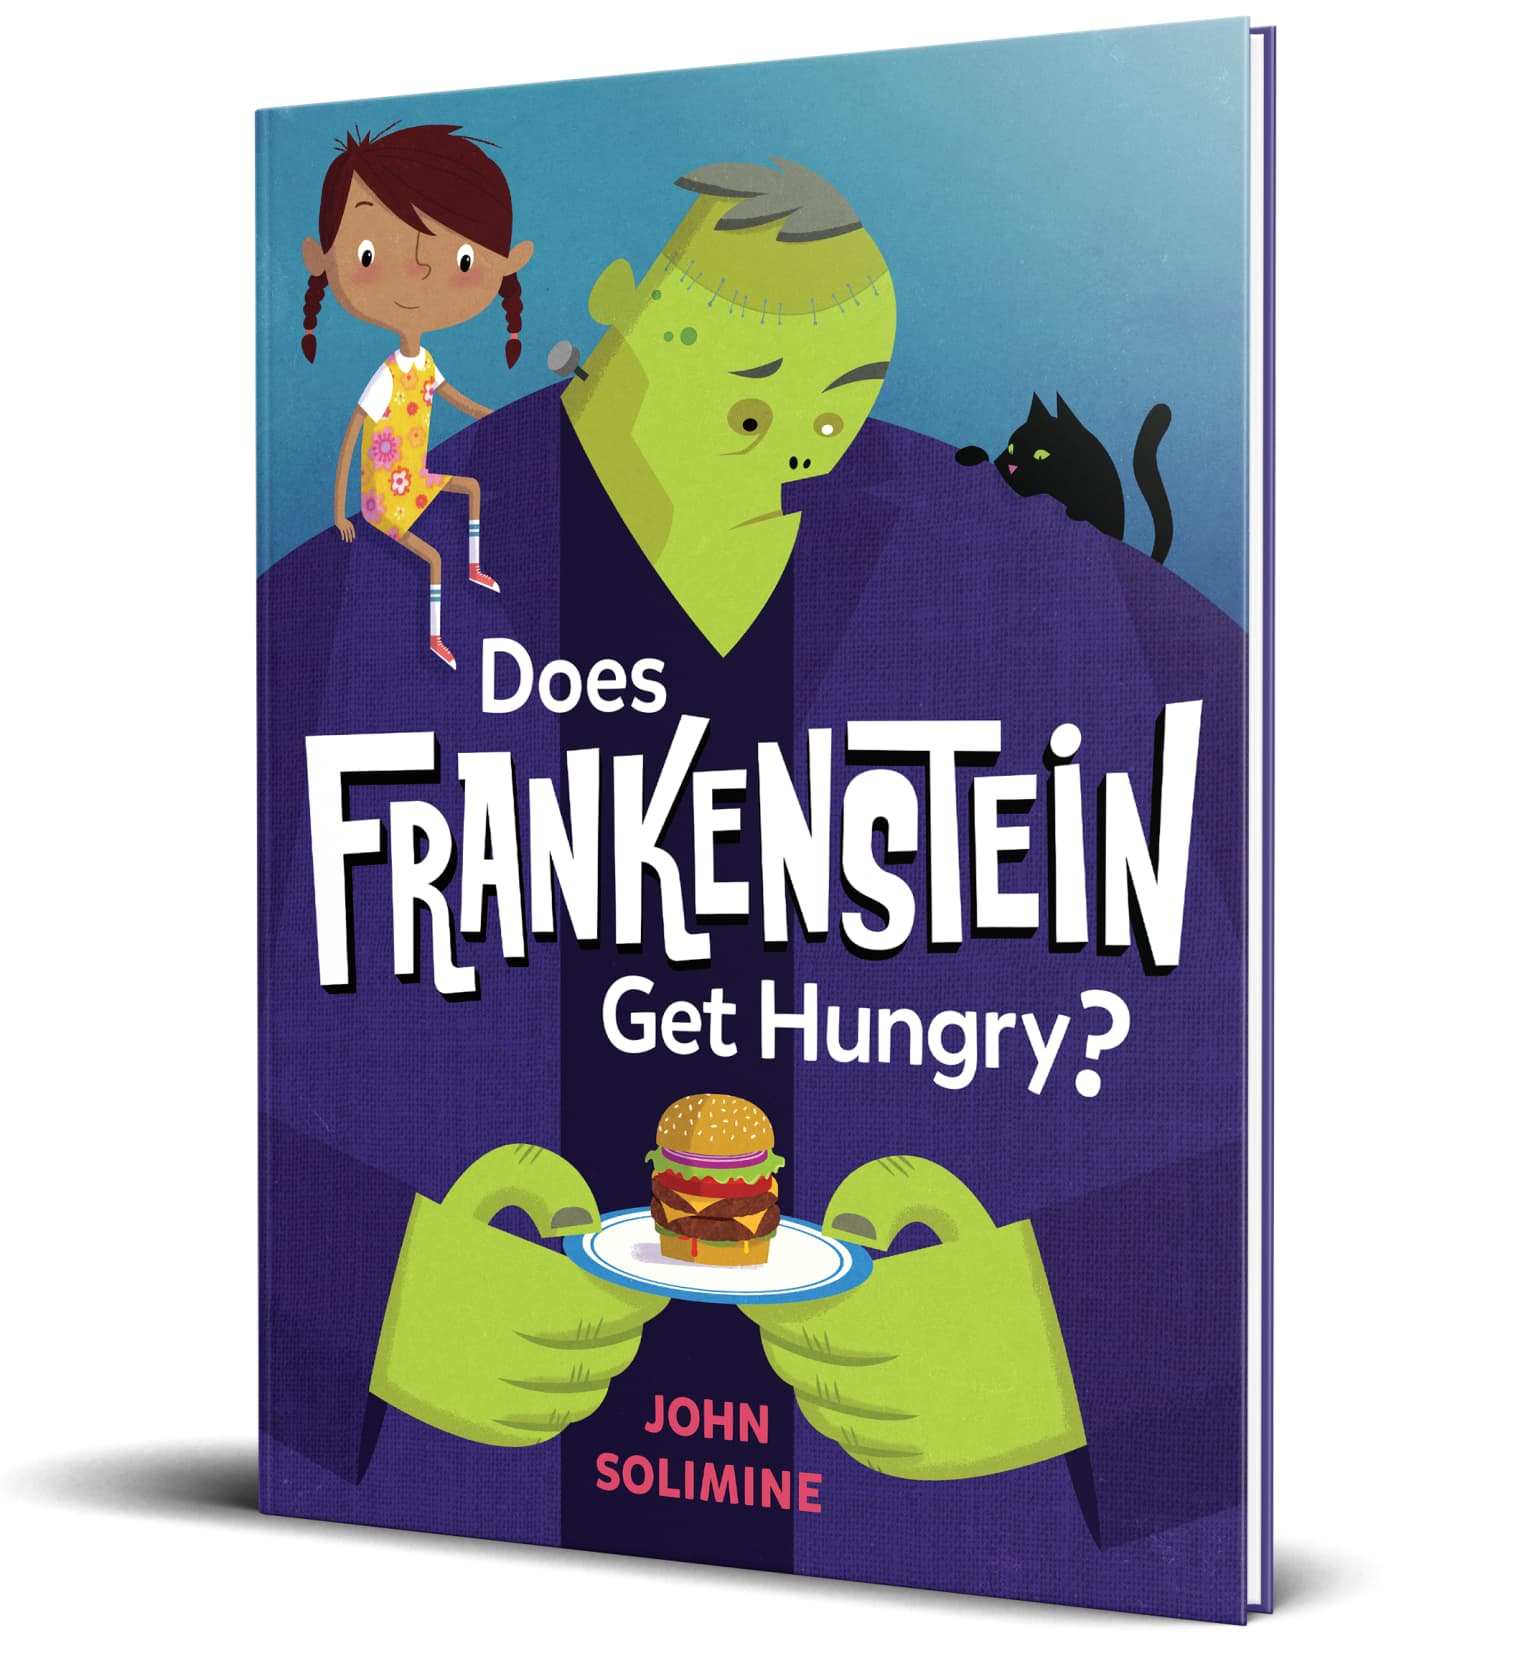 Does Frankenstein Get Hungry?